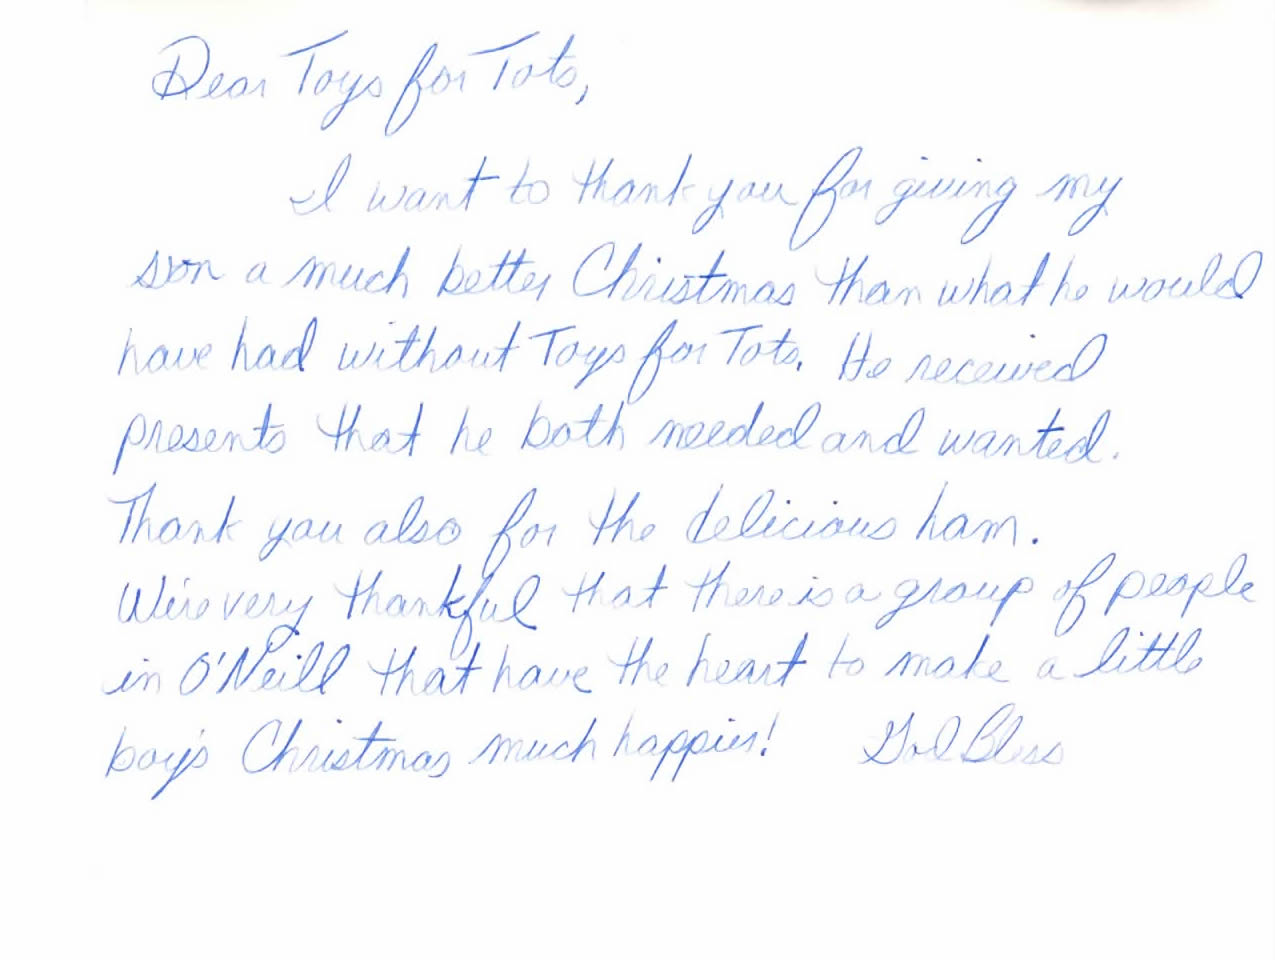 Announcement Email Sample Toys For Tots : Toys for tots thank you letter